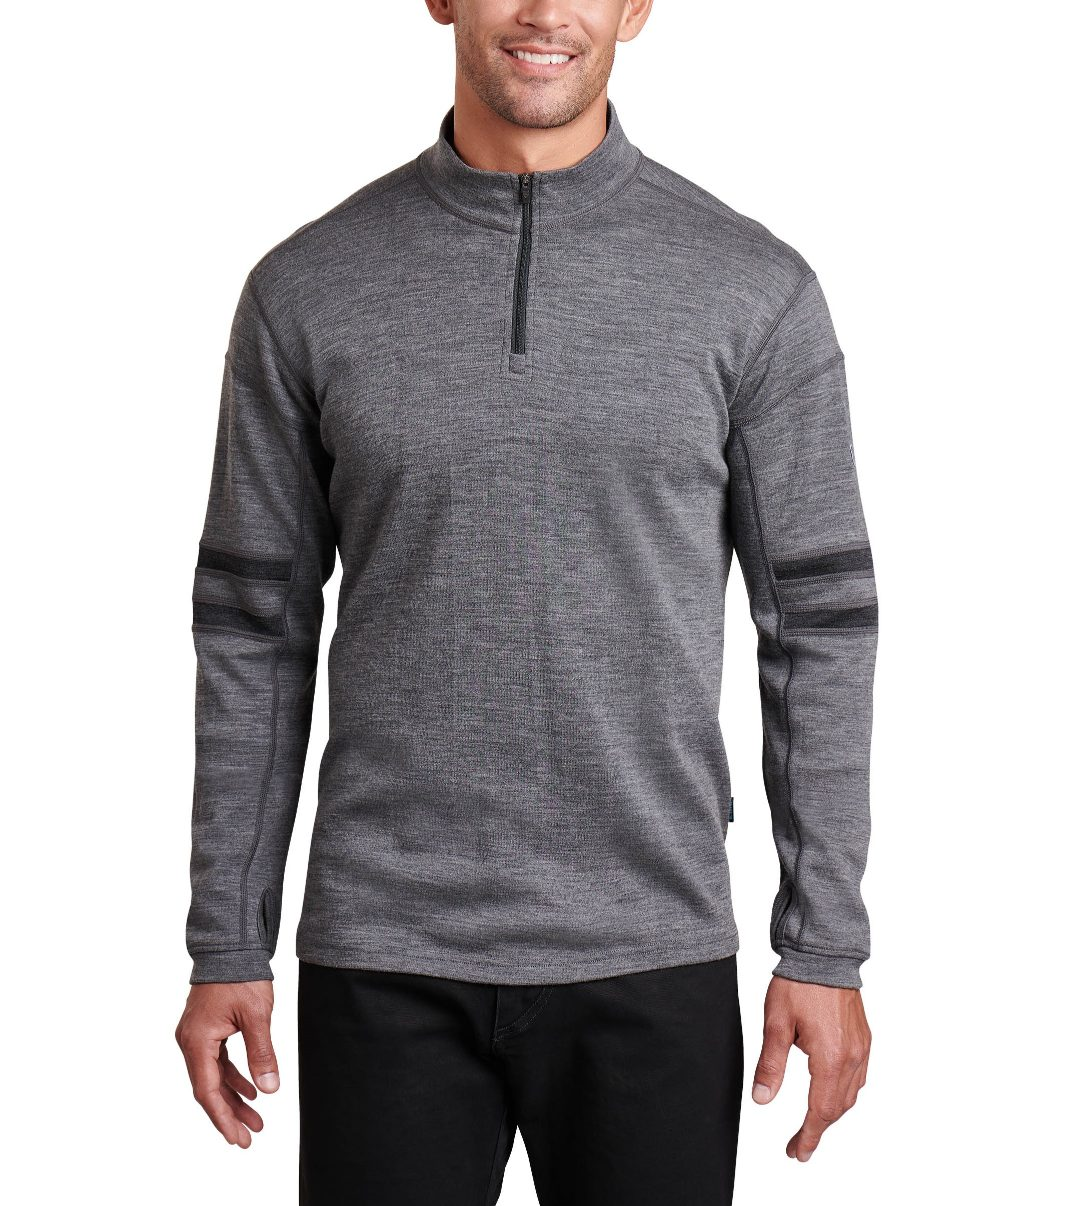 Kühl-Kühl Team 1/4 Zip - Men's